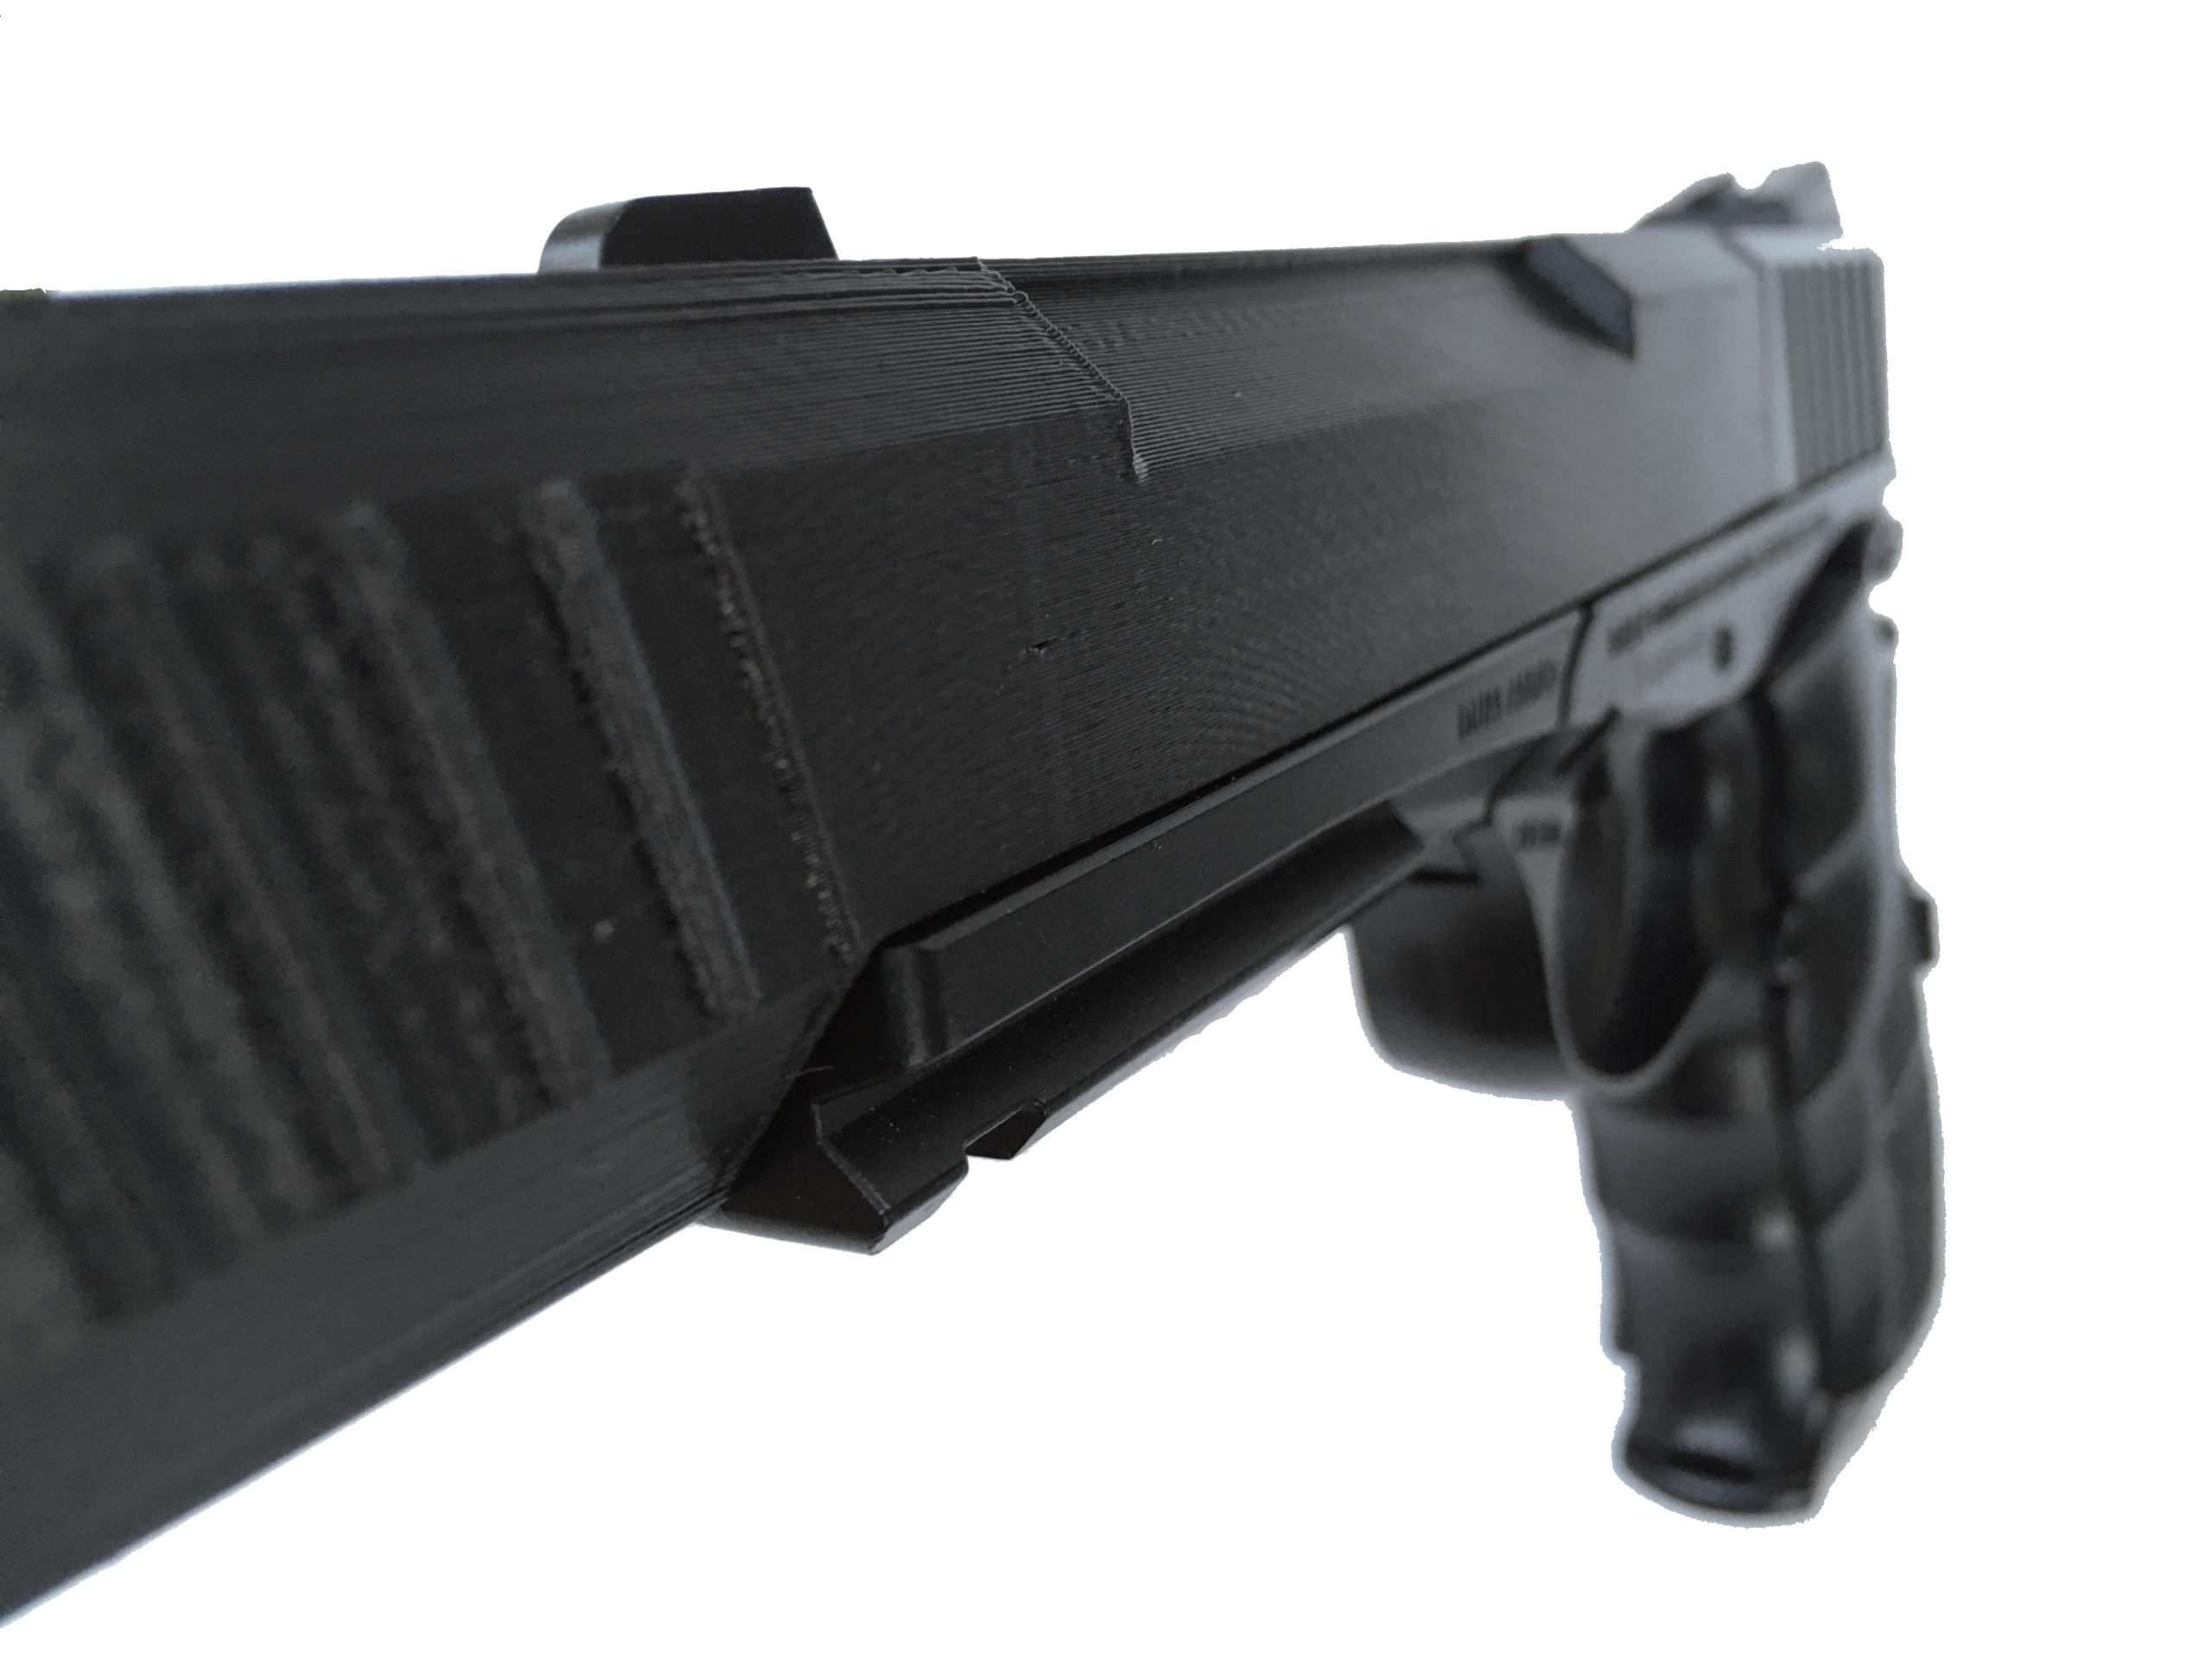 Daisy Powerline 408 Silencer with Dovetail Scope Mount